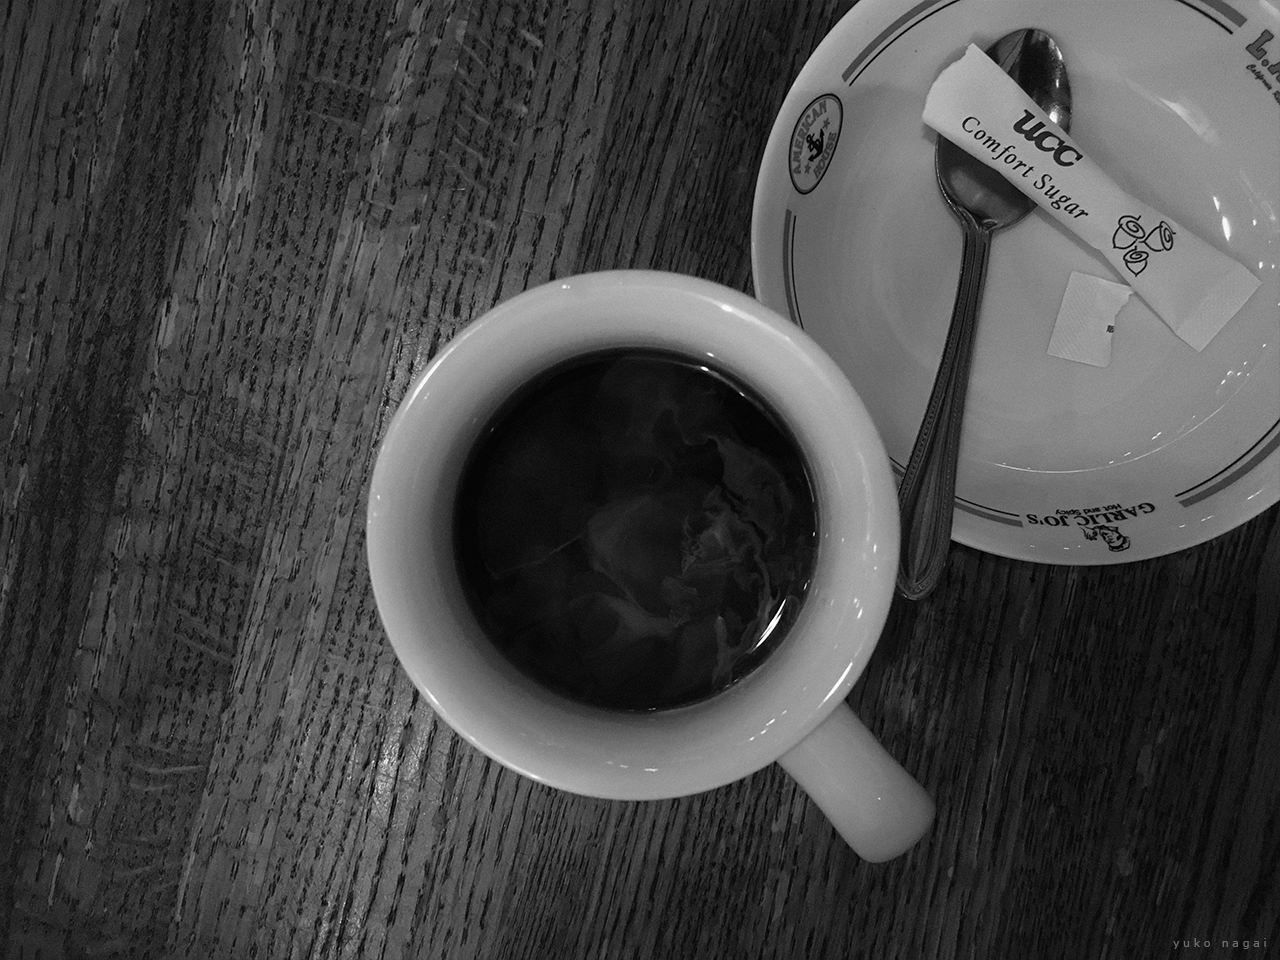 A coffee cup with sugar.